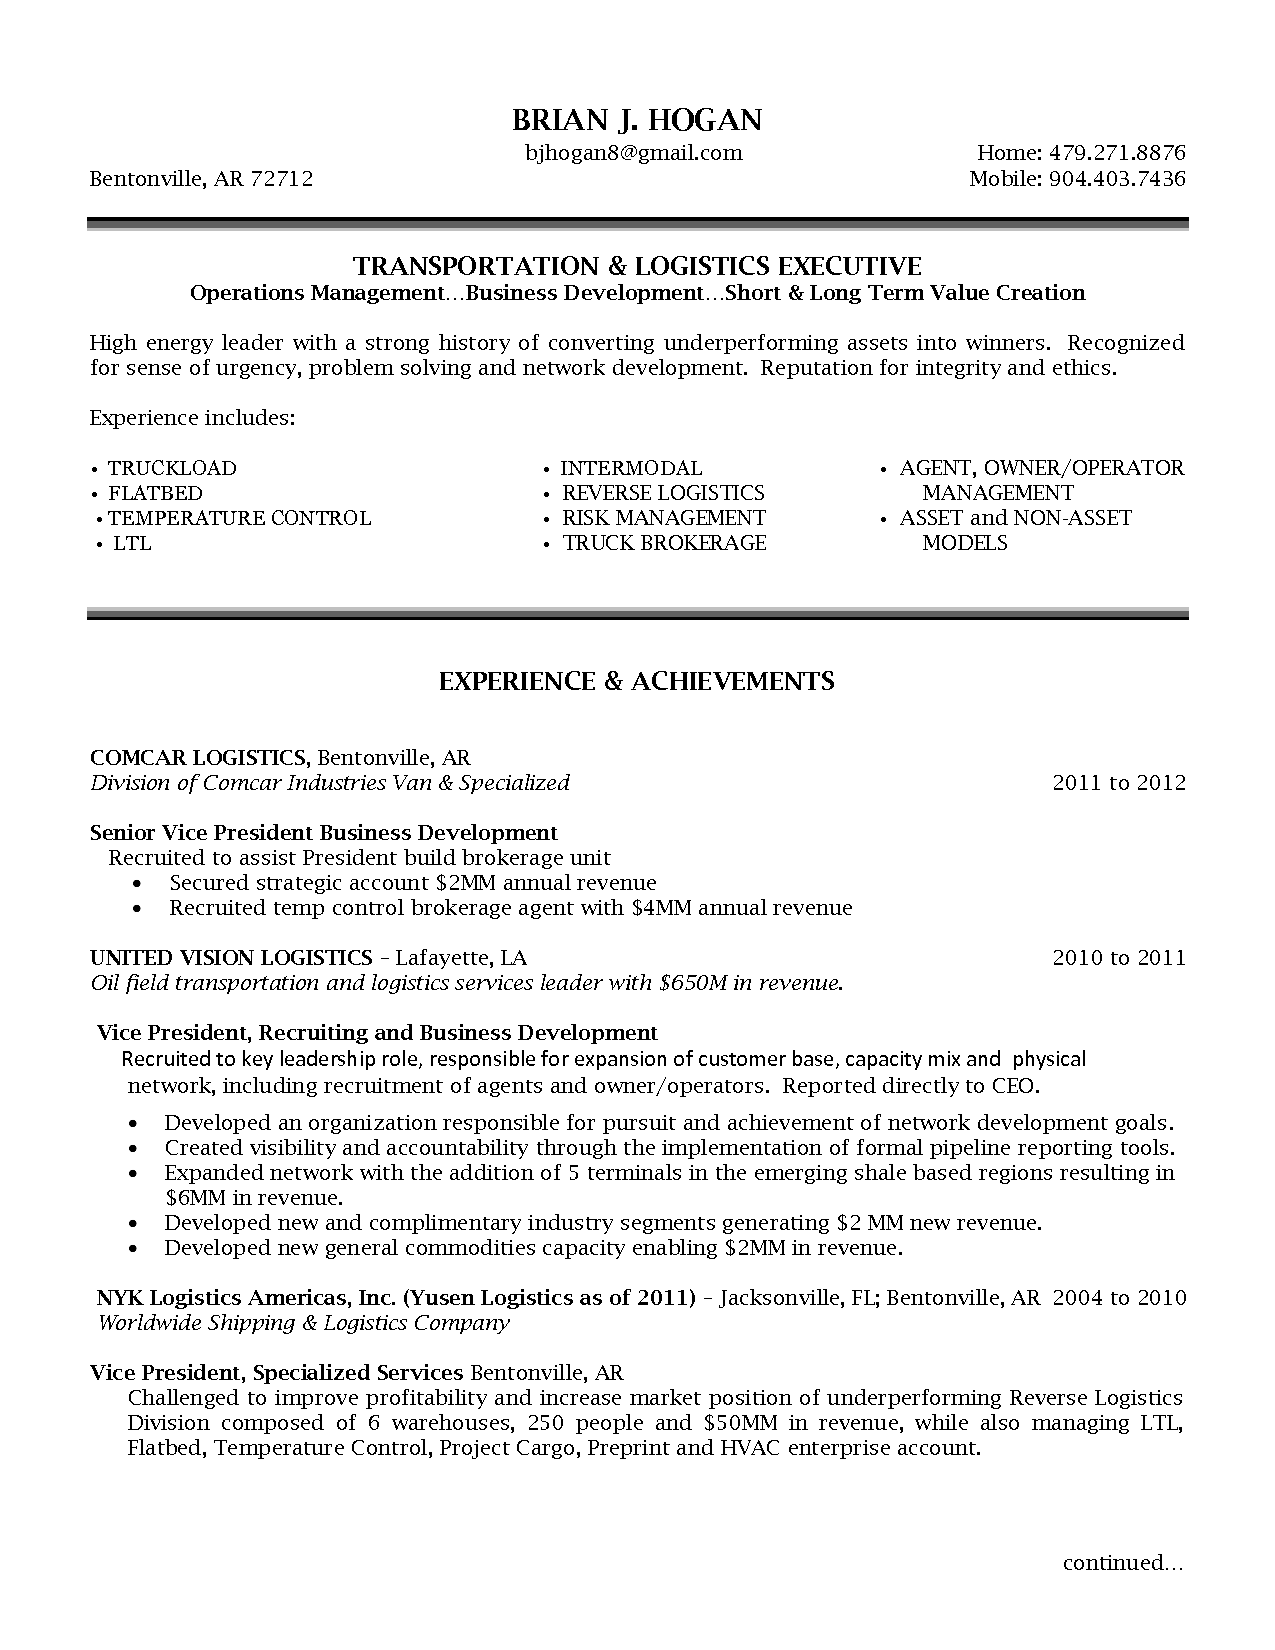 Project Manager Resume Example Senior Logistic Management Resume  Vp Director Operations